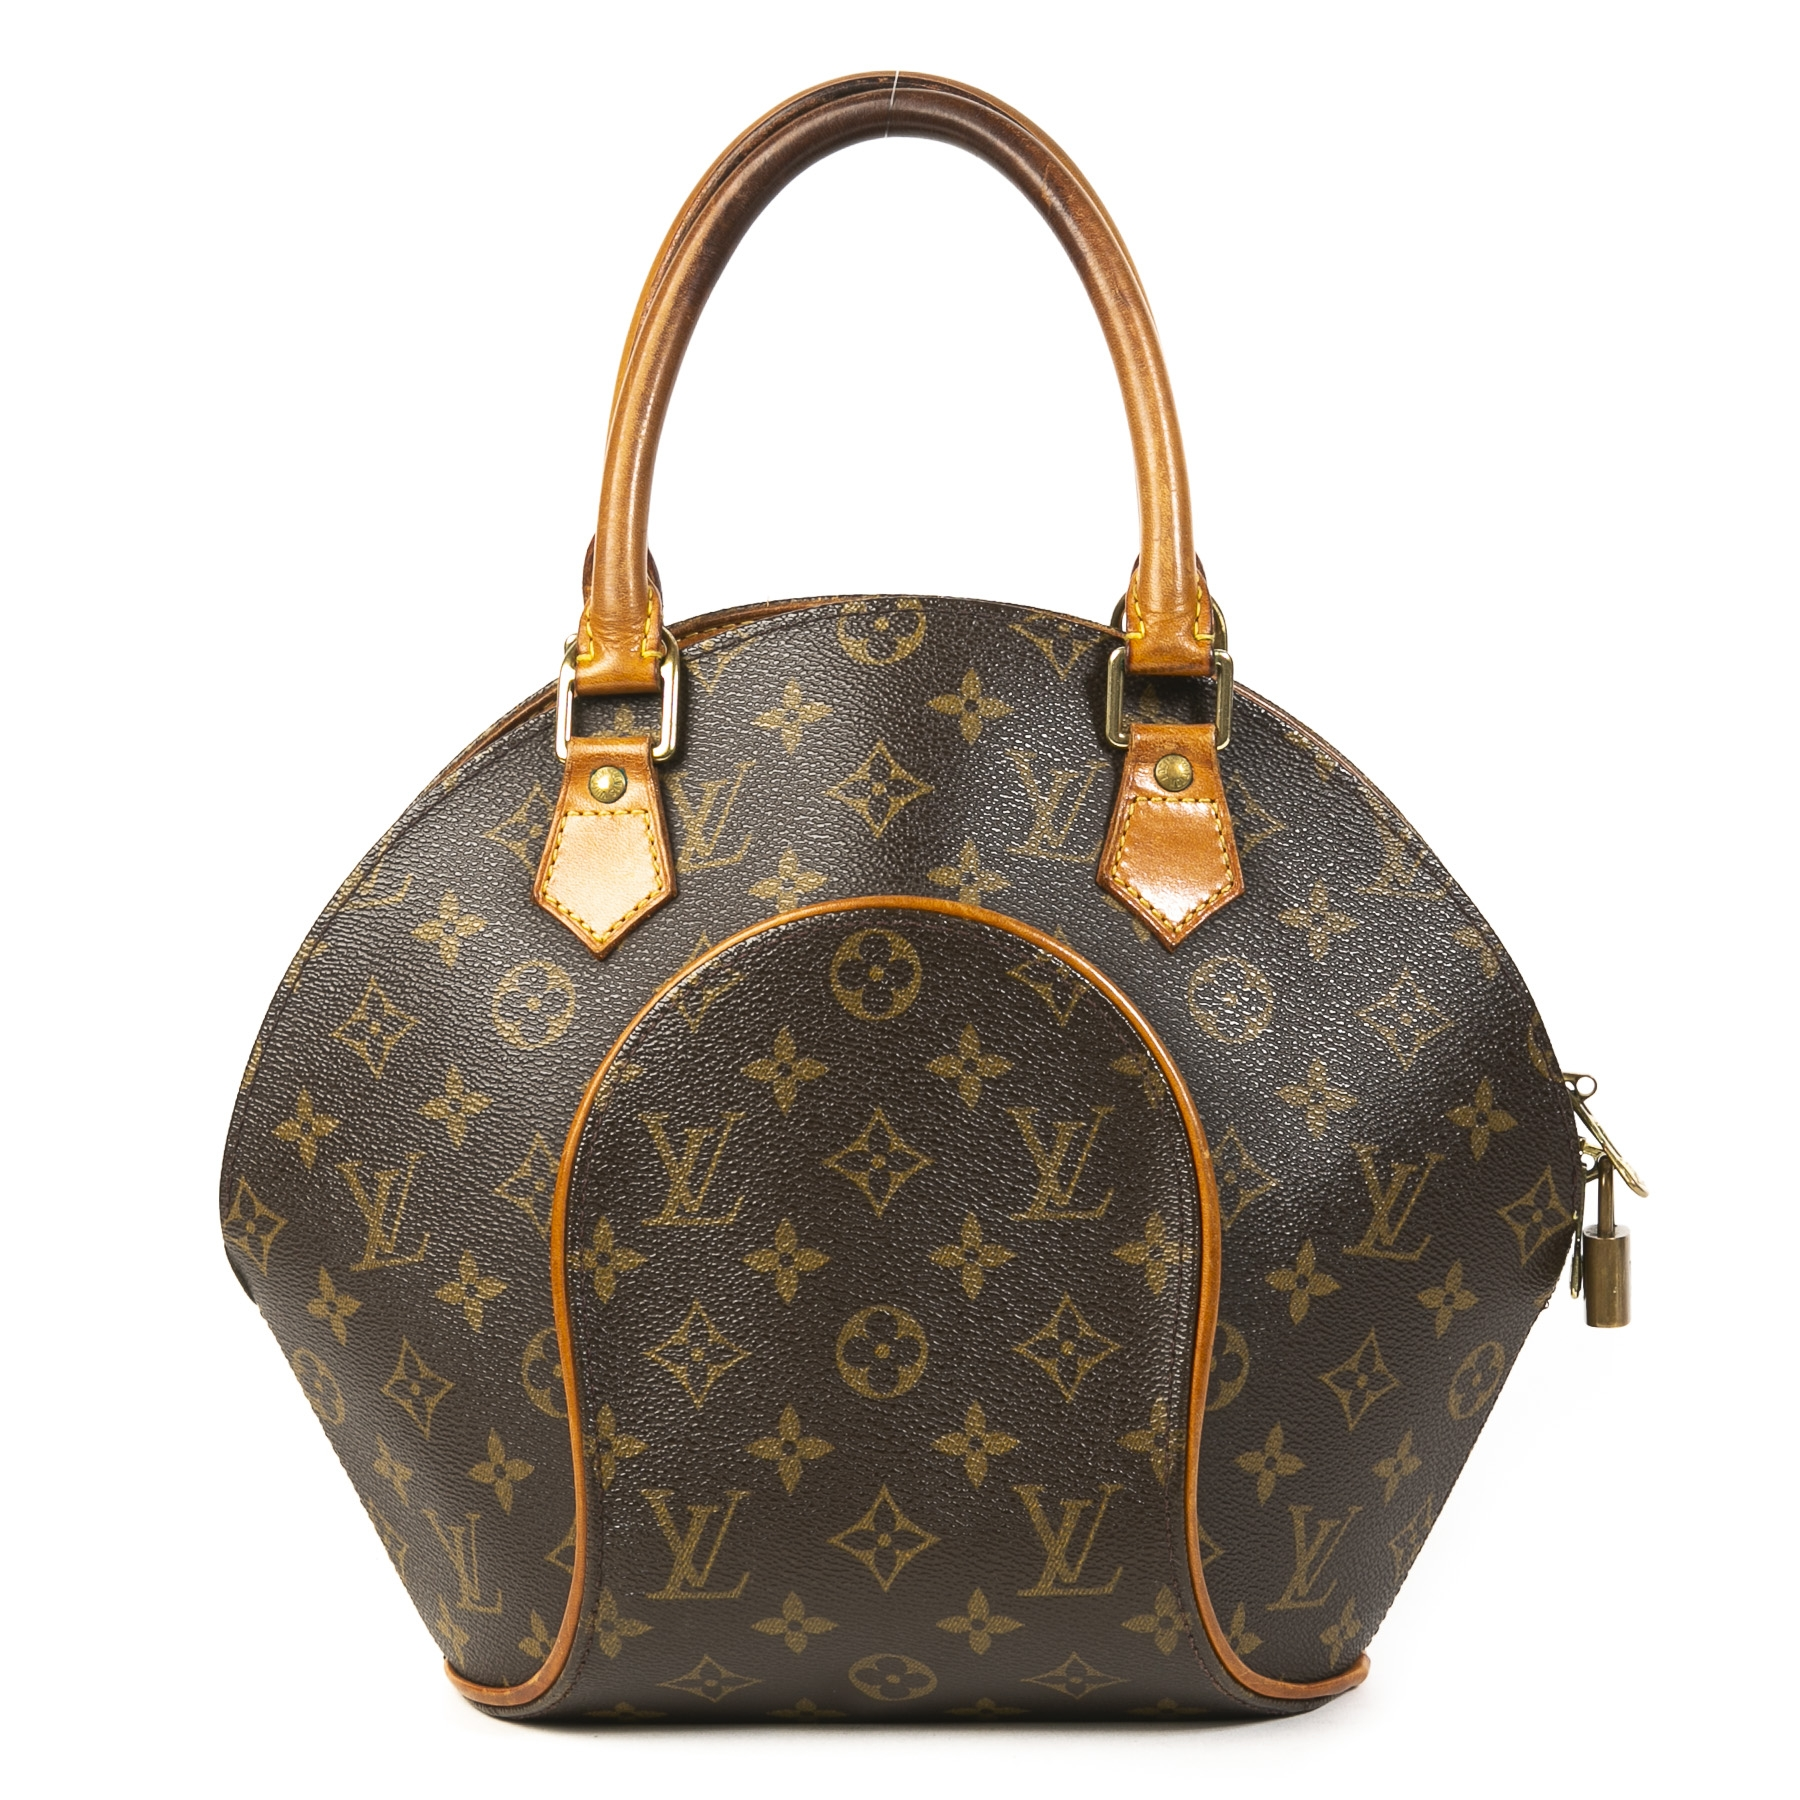 Authentieke tweedehands vintage Louis Vuitton Monogram Ellipse PM Bag koop online webshop LabelLOV